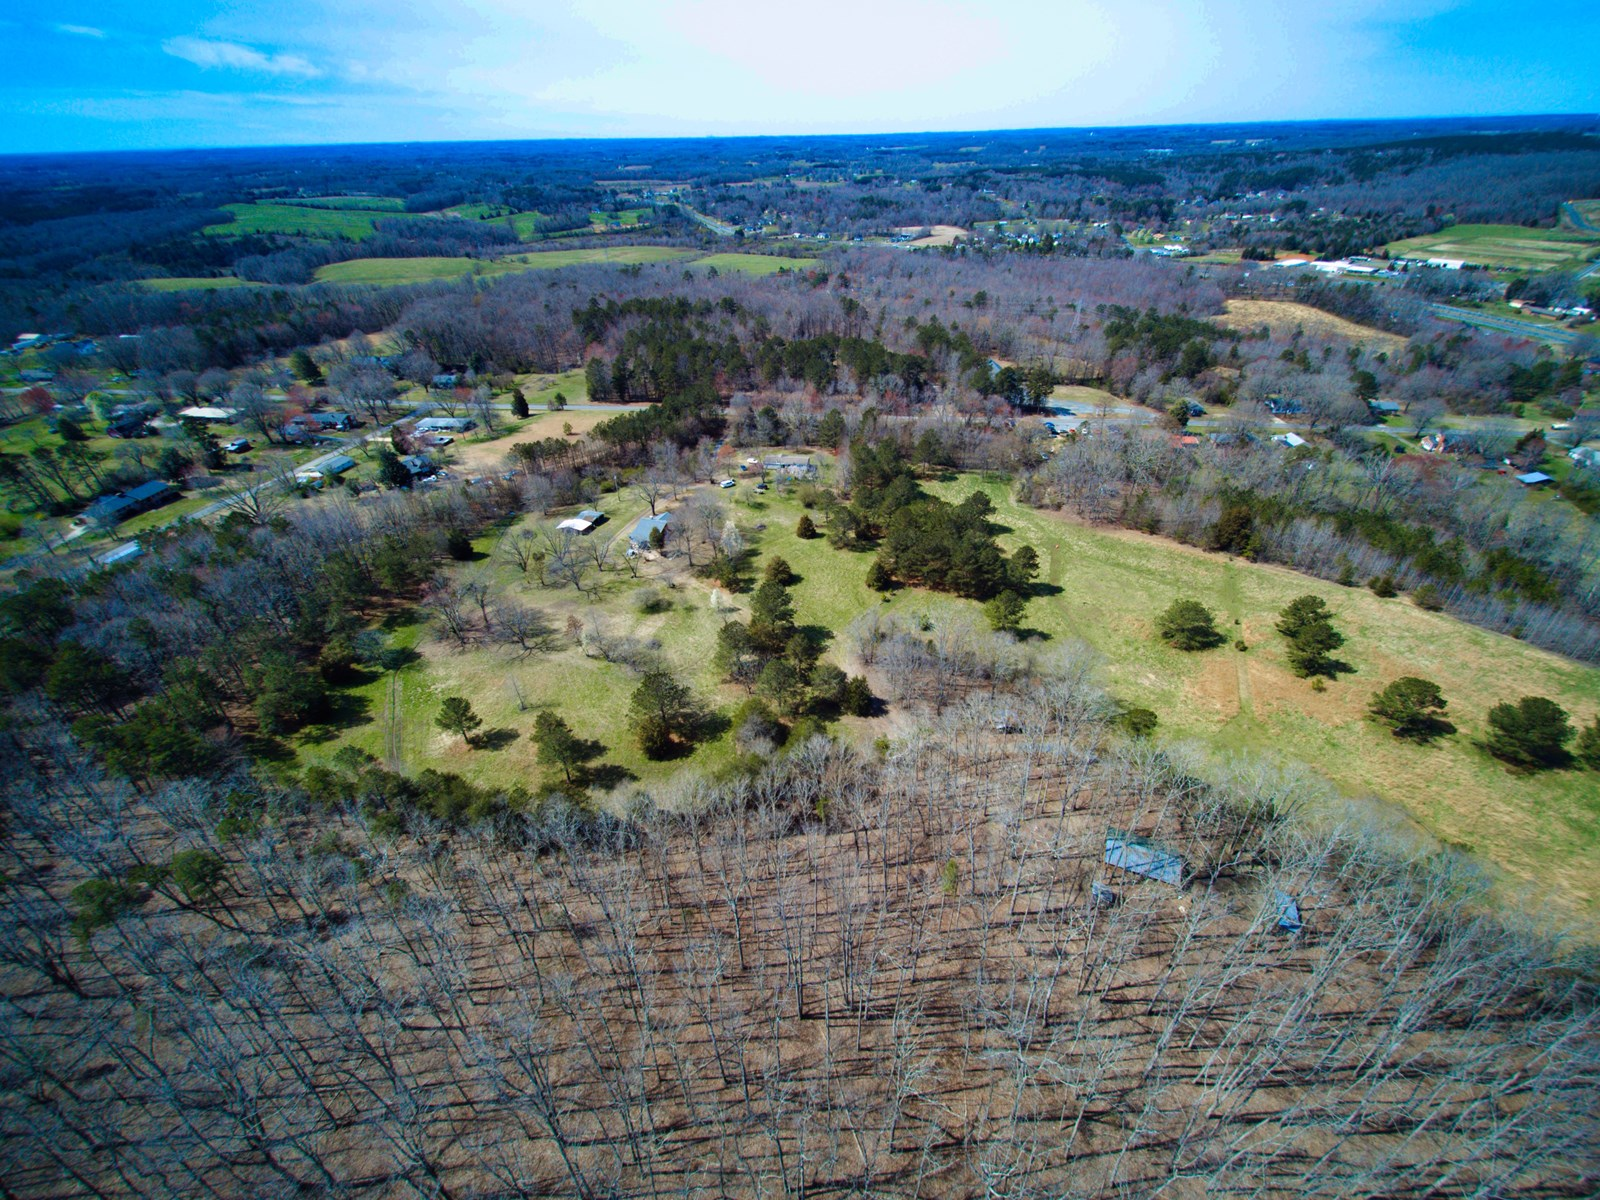 Acreage For Sale in Stanly County NC